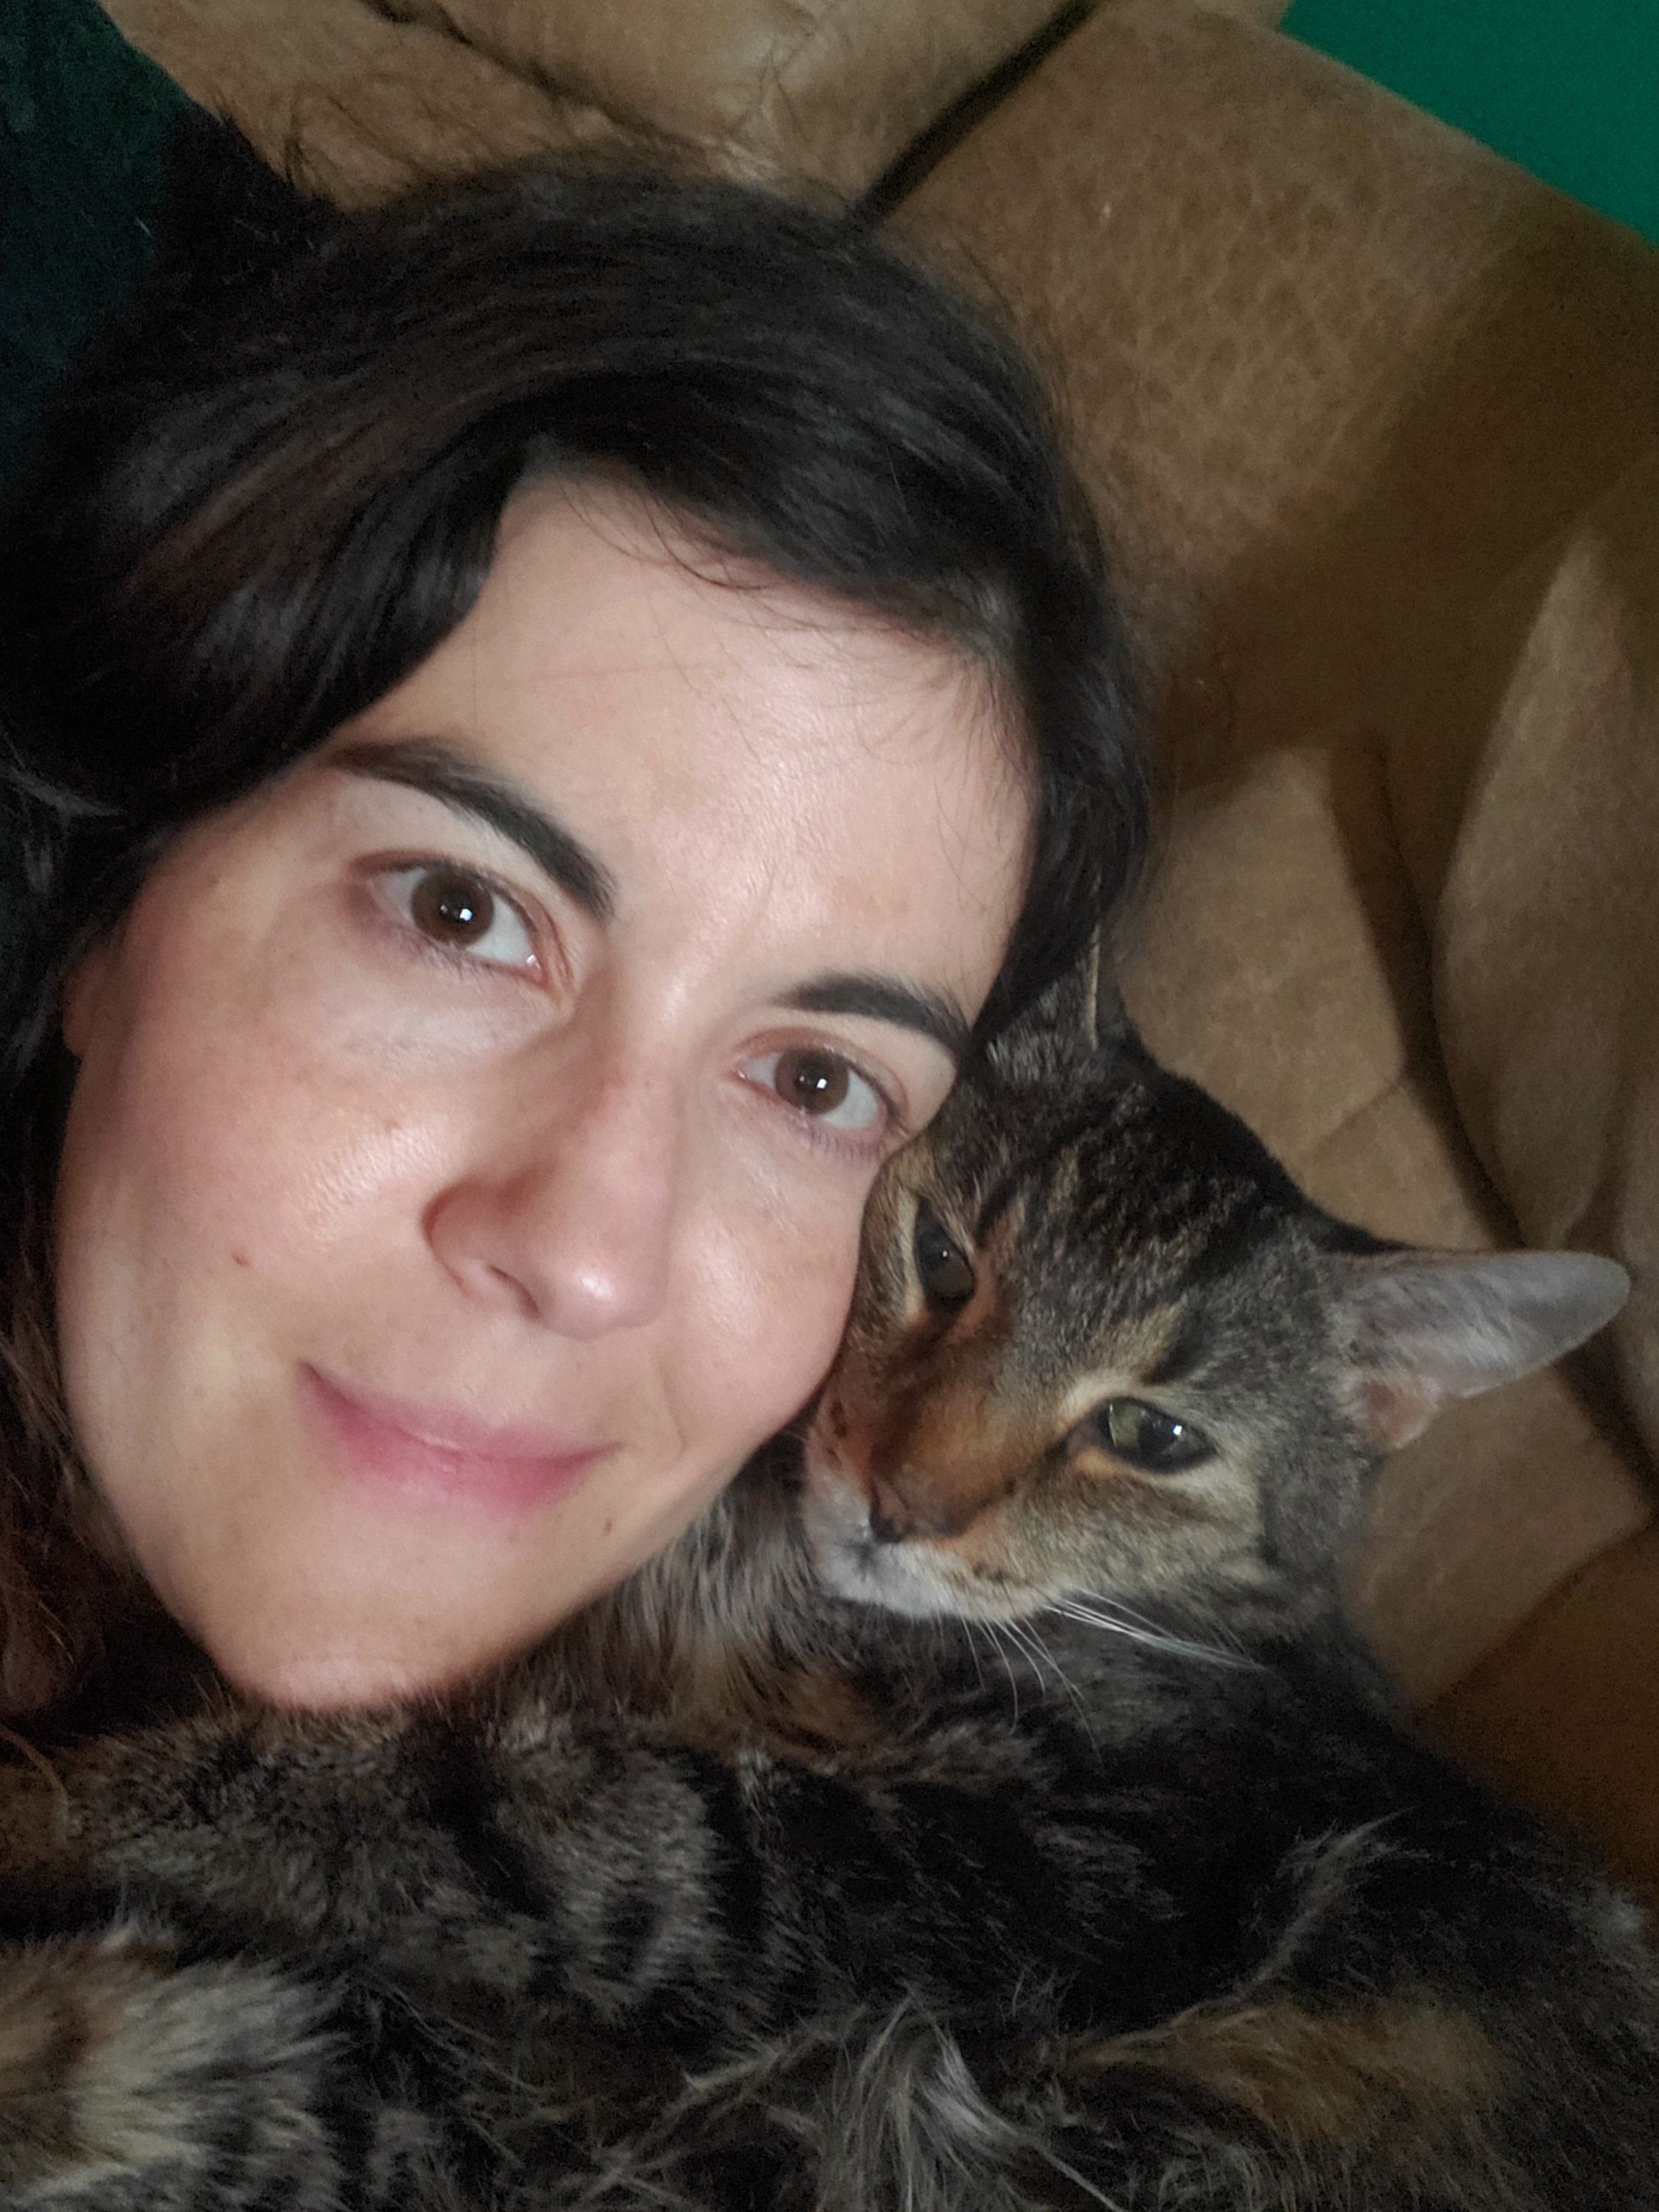 Woman snuggling cat